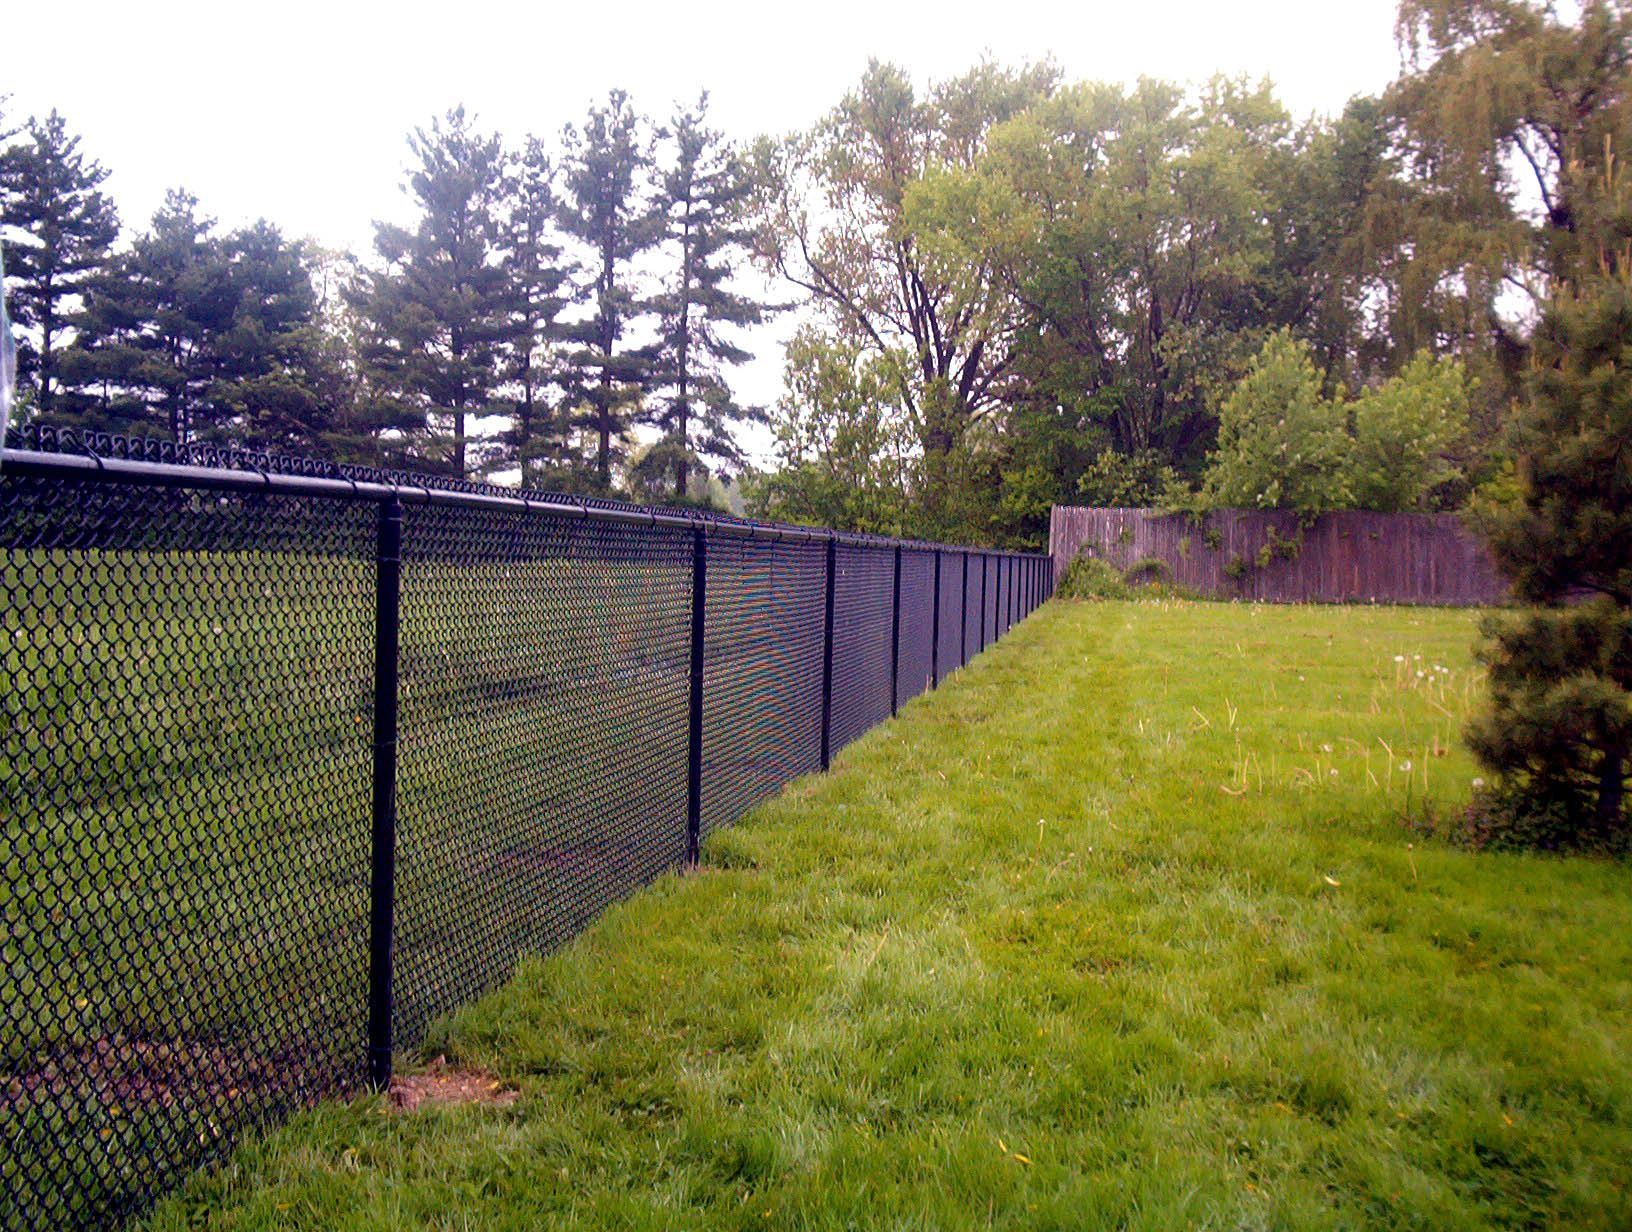 Chain Link Fences Allied Fence Pertaining To Size 4288 X 2848 5 Ft Black Vinyl Chain Link Fence The Fence Design Black Chain Link Fence Chain Link Fence Cost